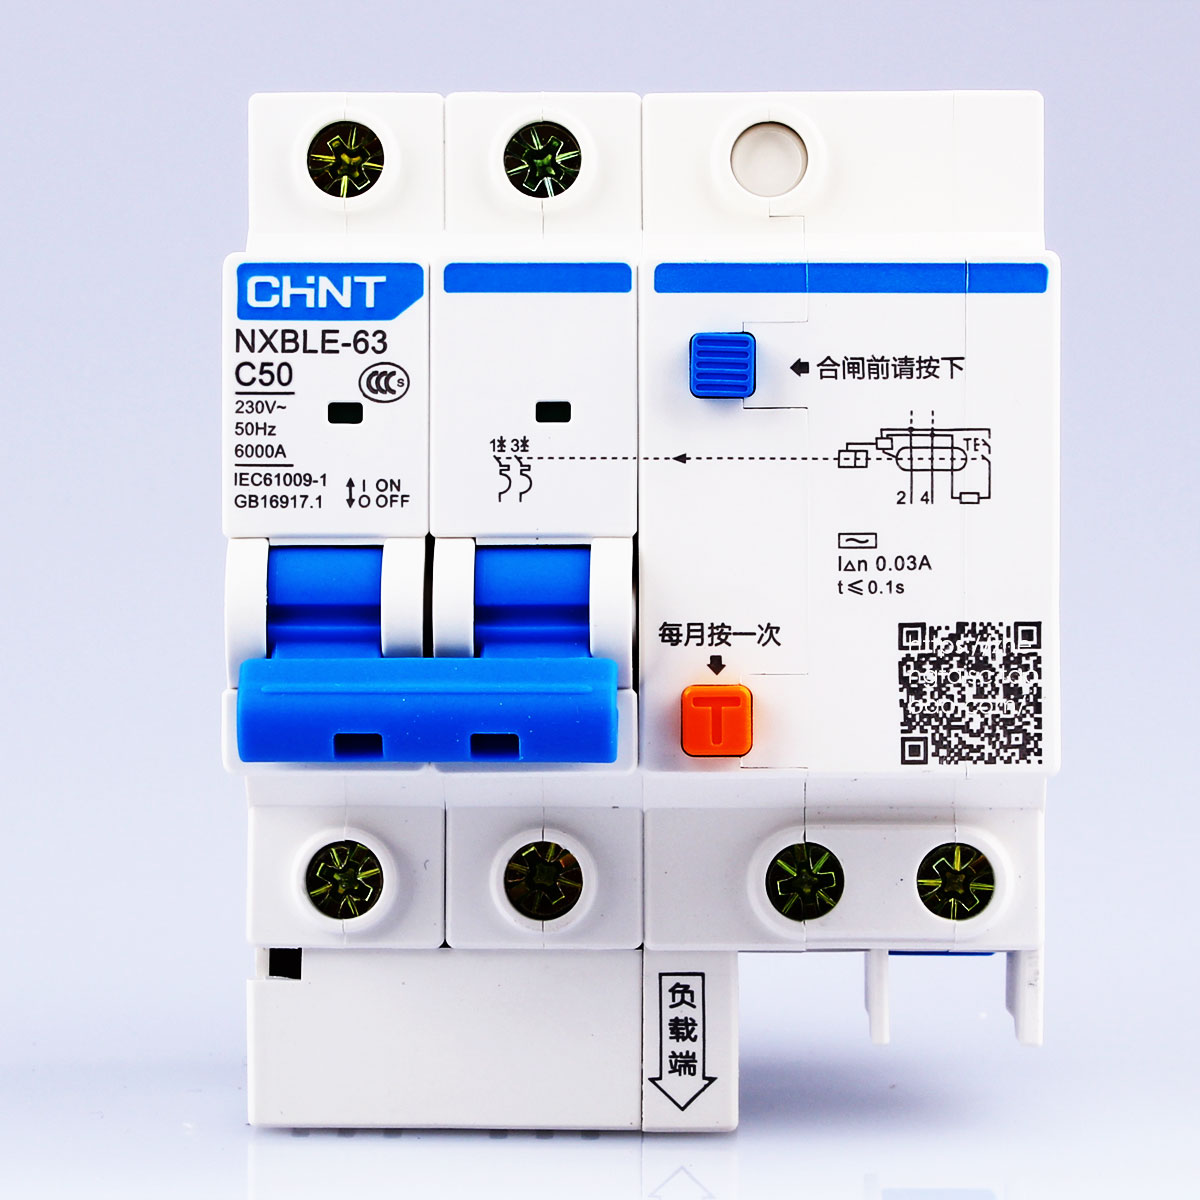 цена на CHINT NXBLE-63 2P 6A 10A 16A 20A 25A 32A 40A 50A 63A 230V 50/60HZ RCBO Earth Leakage Circuit Breakers With Leakage Protection